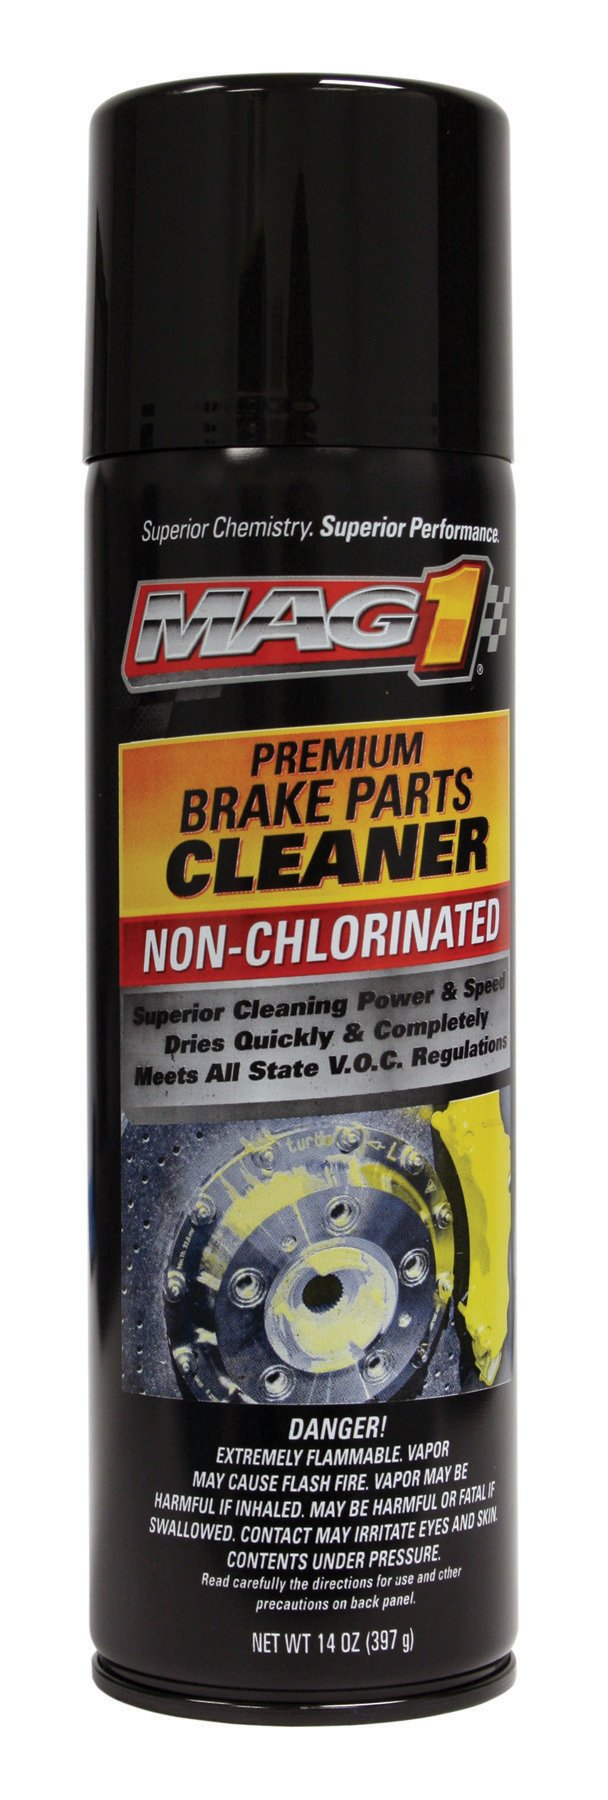 MAG1 579-pk12 Non-Chlorinated Brake Parts Cleaner - 14 oz., (Pack of 12) by Mag 1